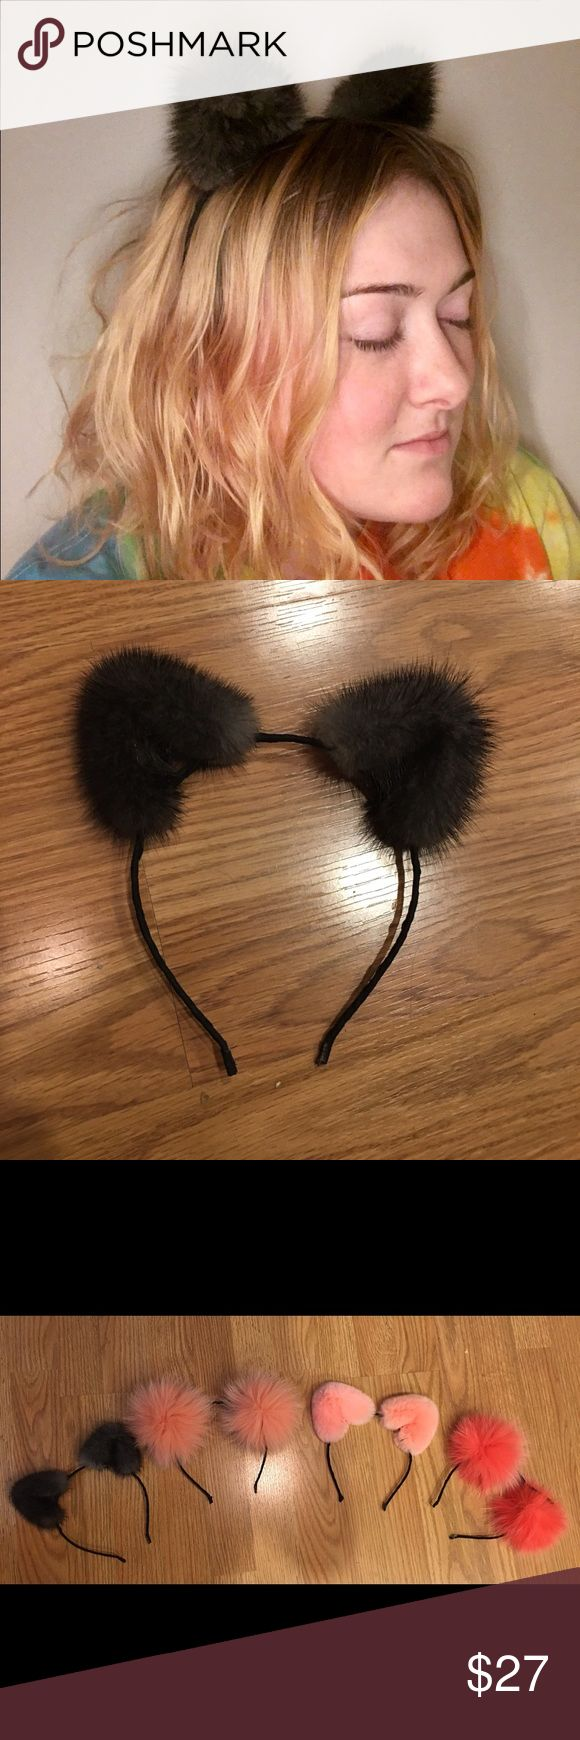 Mink cat ears! Fun, spunky, Ariana Grande style Fun, spunky Ariana Grande style fur cat ears. Real mink fur. Adorable grey fur wrapped and affixed around black cat ear headband frame. Perfect for parties, costumes, or everyday flair! Custom made, brand new with tags, never been worn. Check other listings for different color combos and fur styles! Accessories Hair Accessories